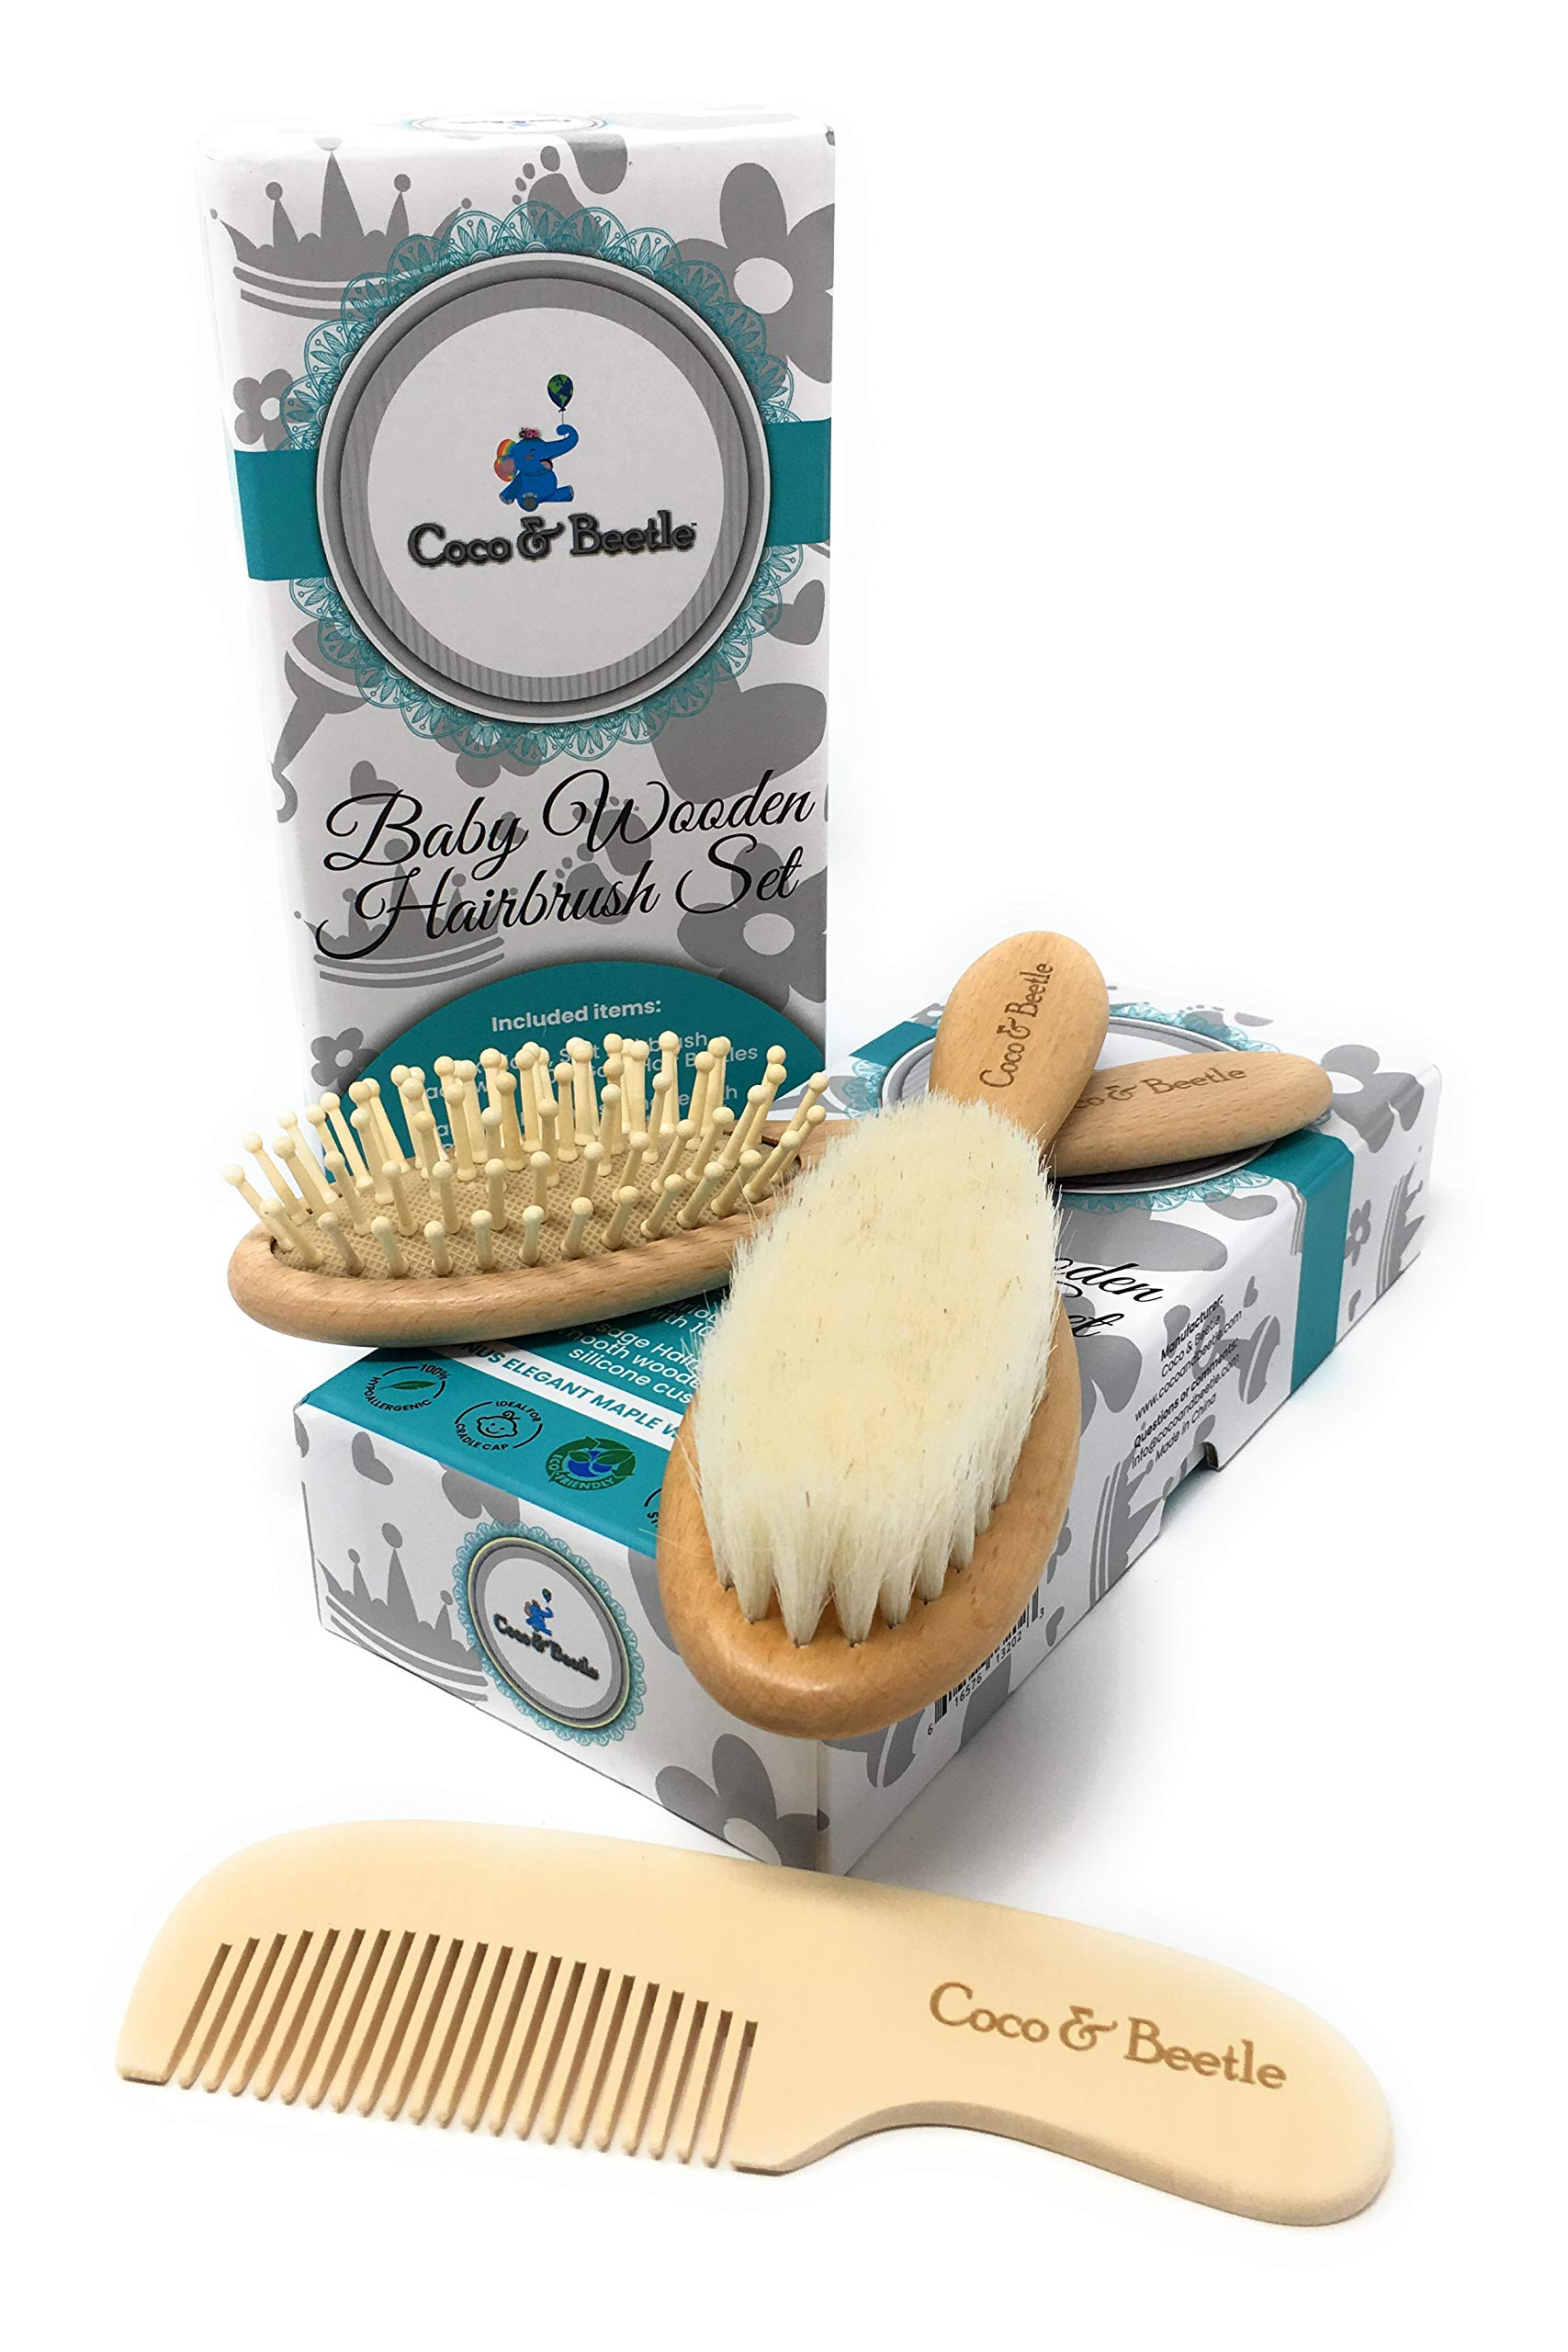 Coco & Beetle Baby Brush Set - Gift for Baby Girl or Boy Newborn to Over 1year - Wooden Brushes - Soft Goat Hairs - Massage Bristles on Silicone Base - Hair Detangler, Soothes Scalp, Helps Cradle Cap by Coco & Beetle